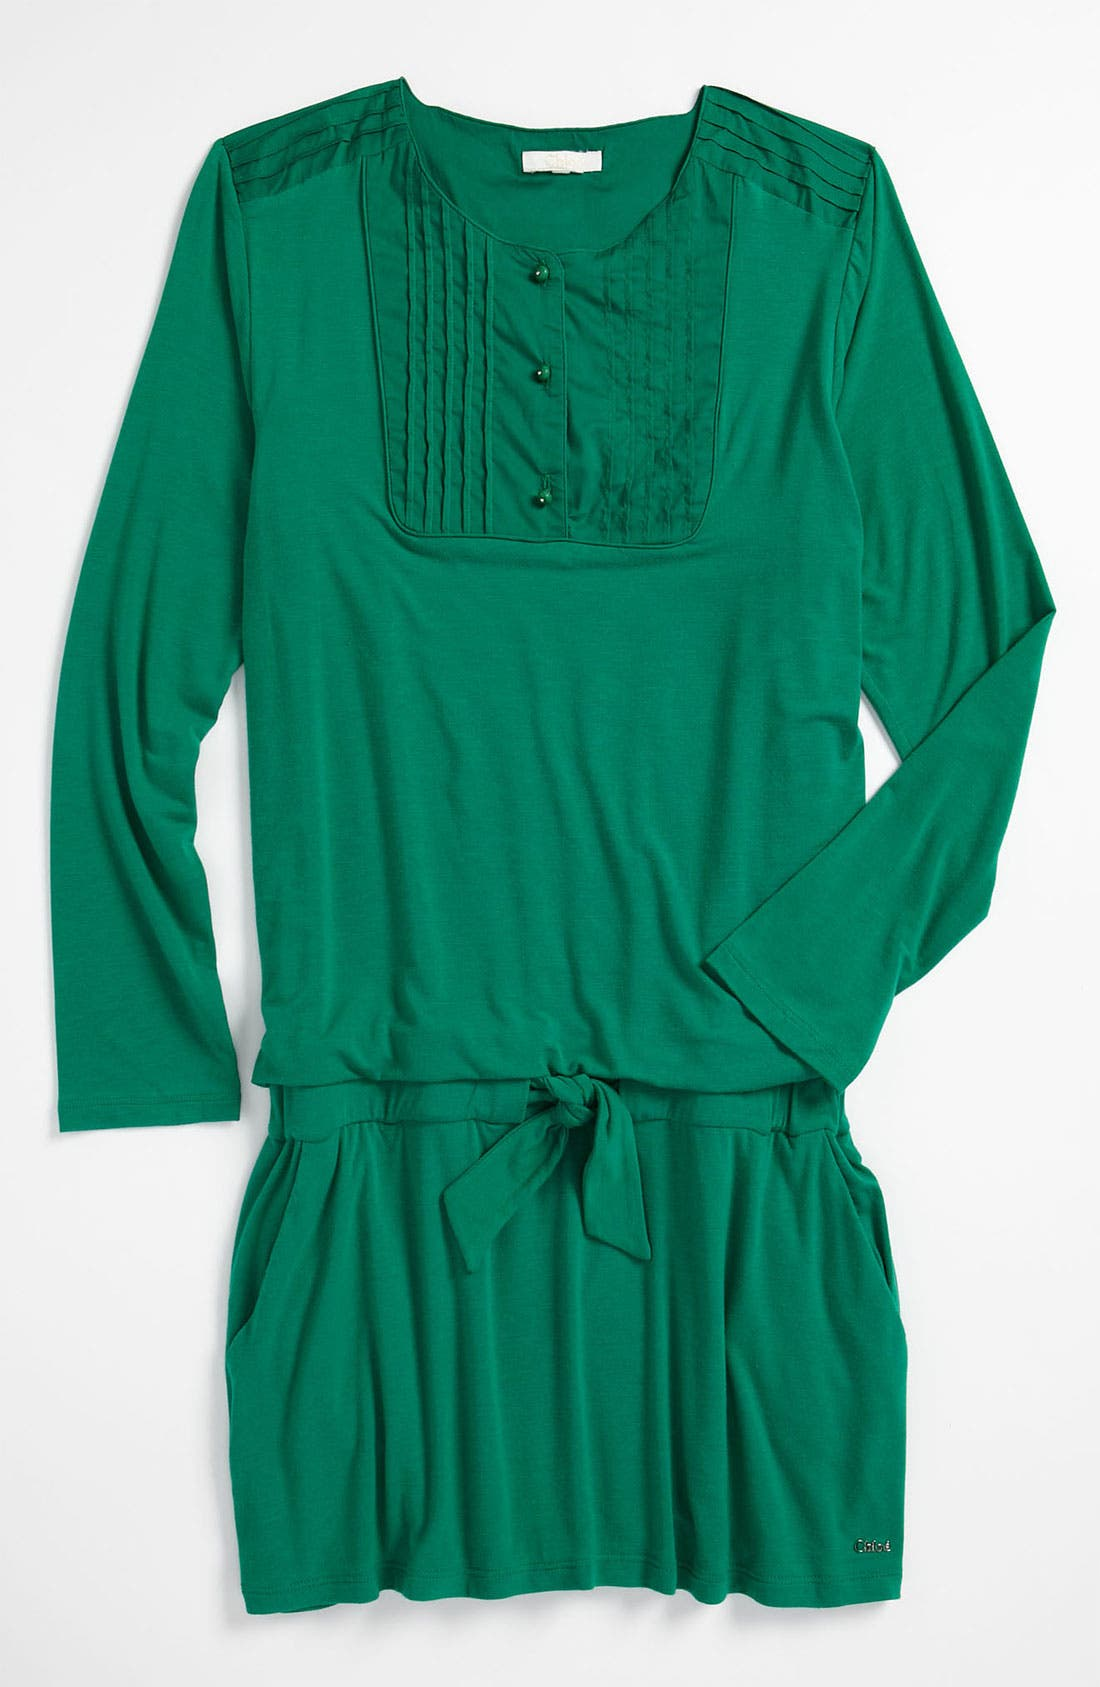 Alternate Image 1 Selected - Chloé Drop Waist Dress (Little Girls & Big Girls)